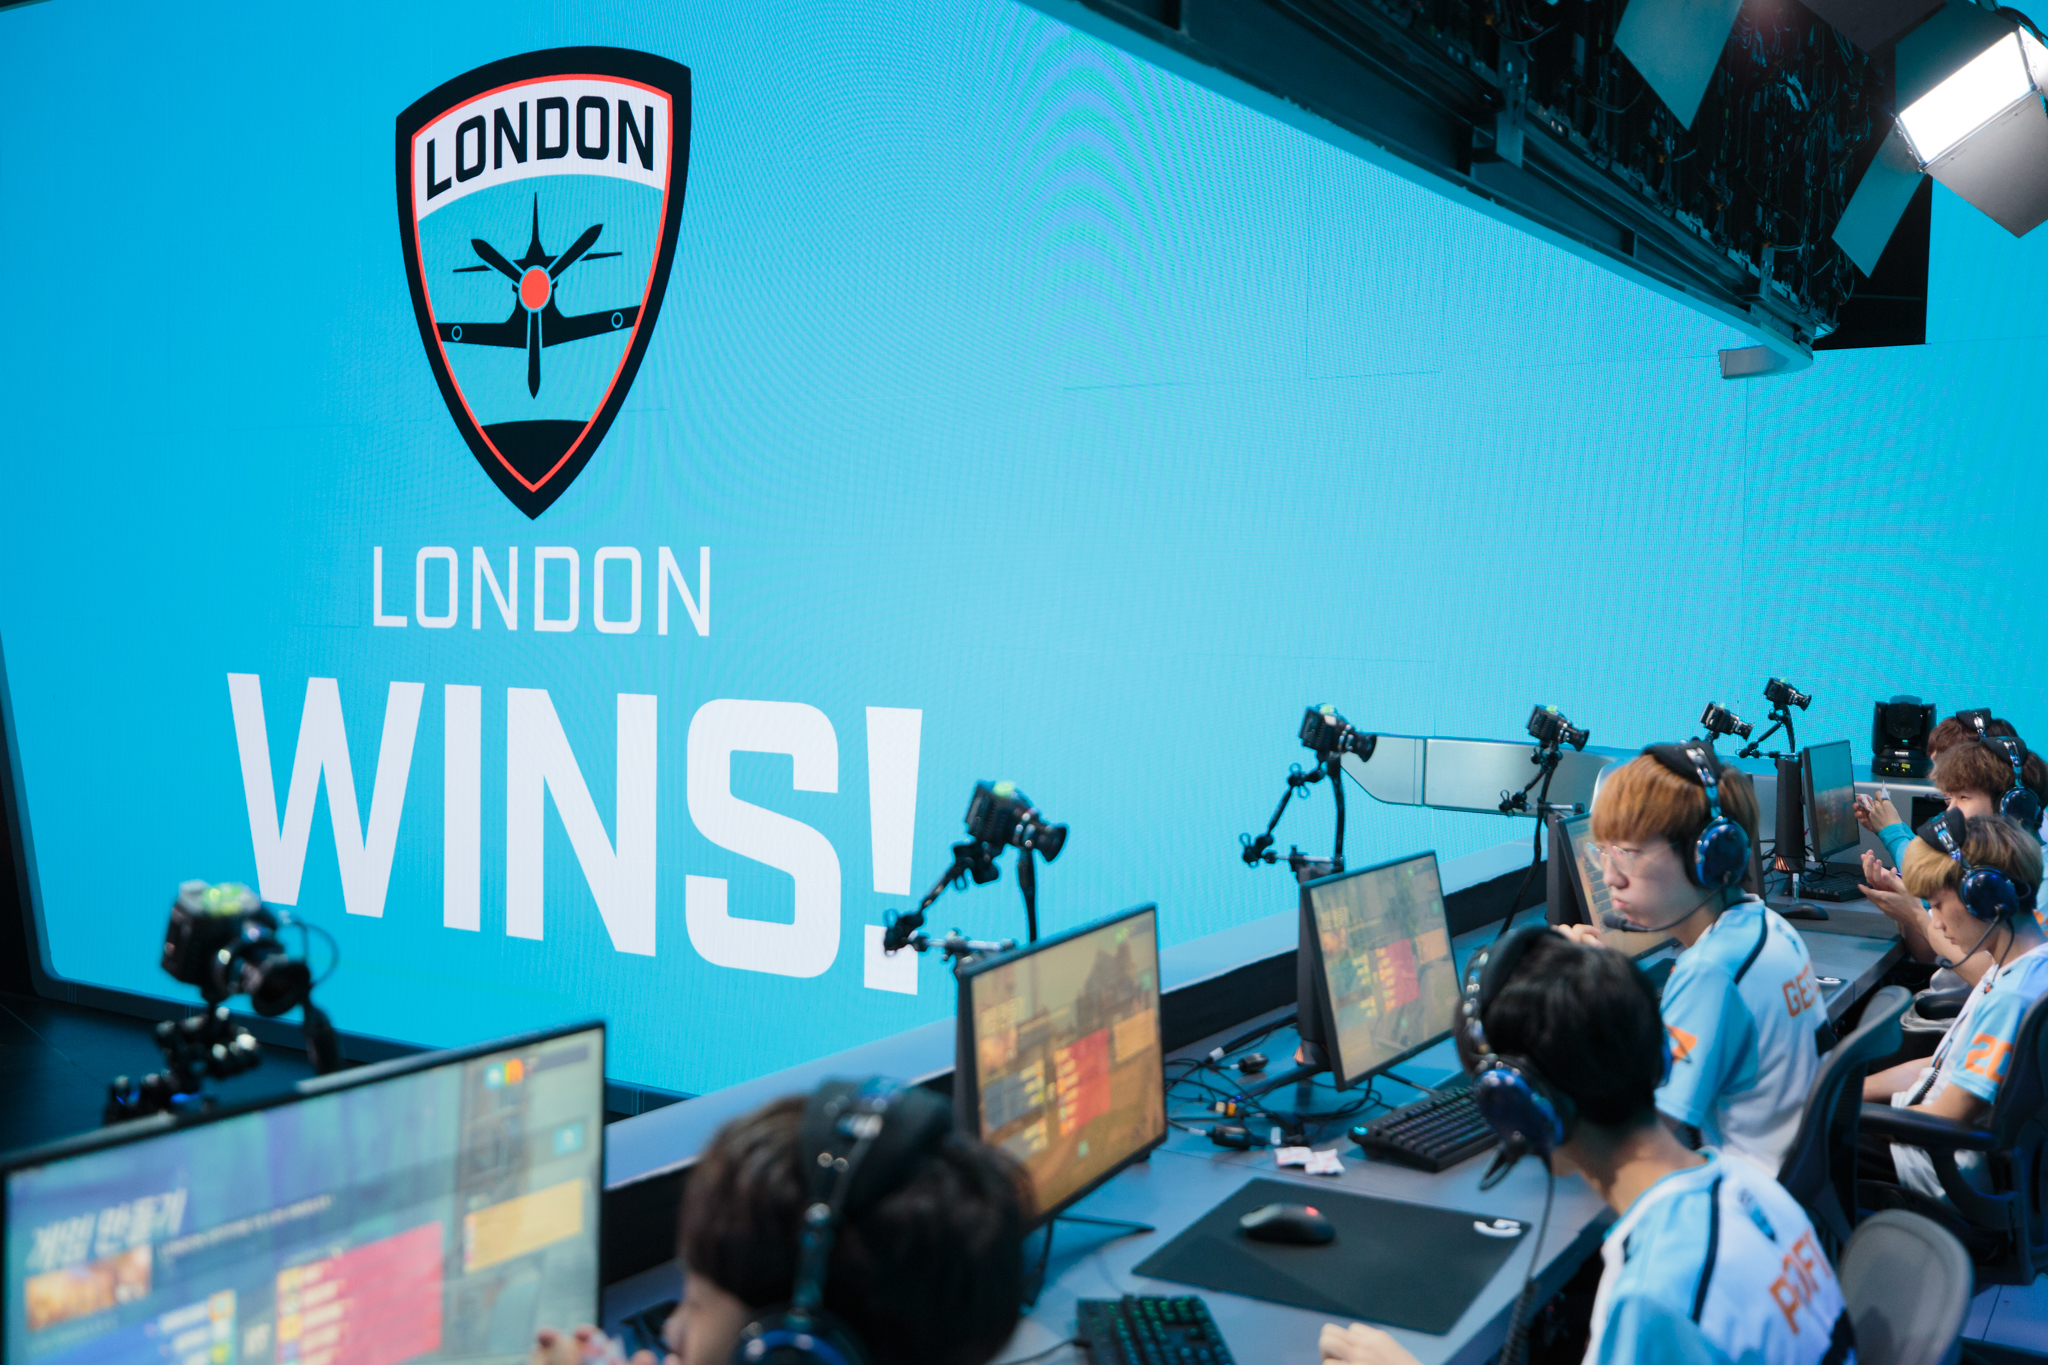 London Spitfire relocate to South Korea for upcoming Overwatch League matches